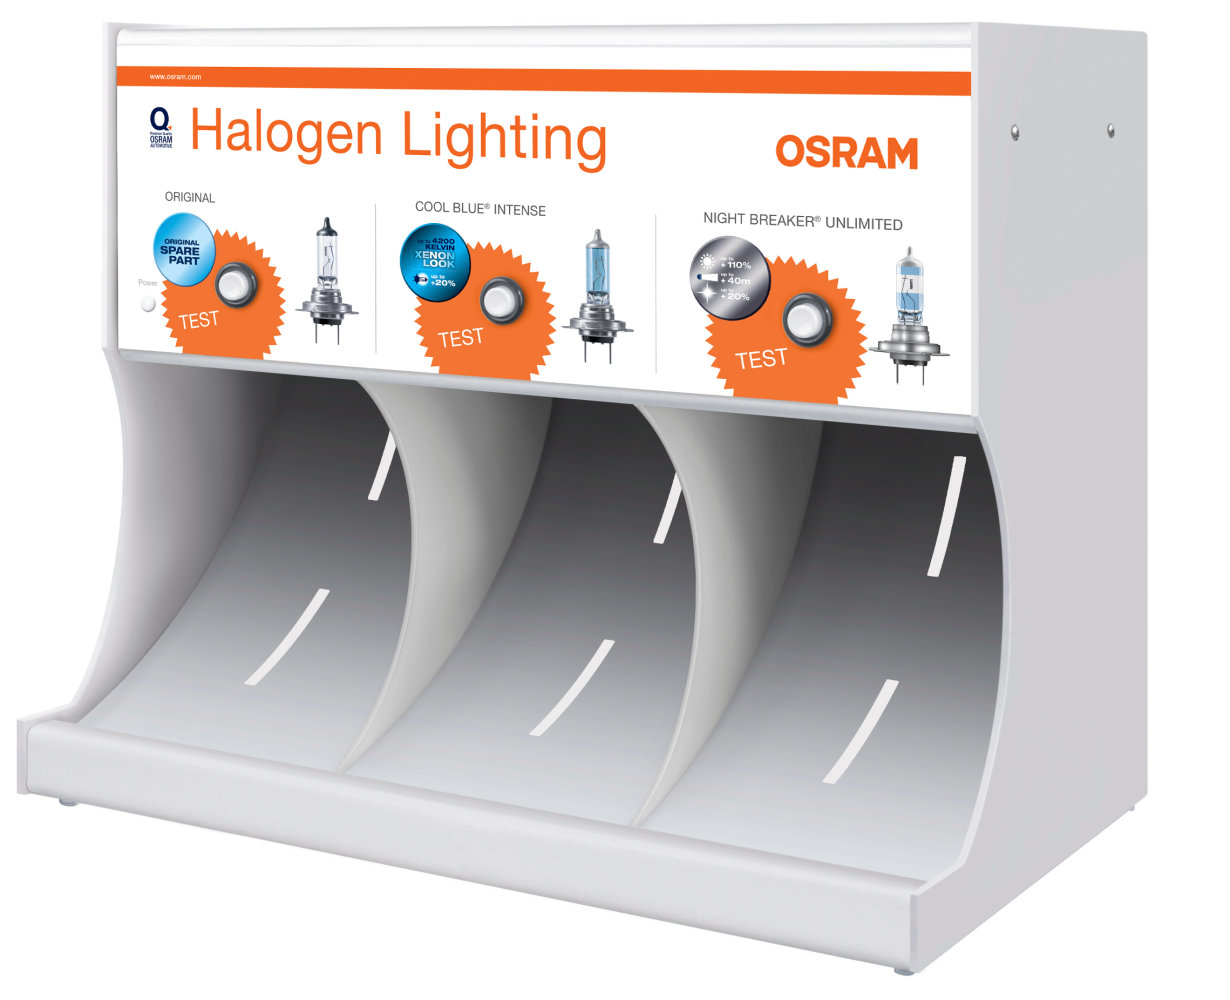 Halogen headlight lamps demo tool